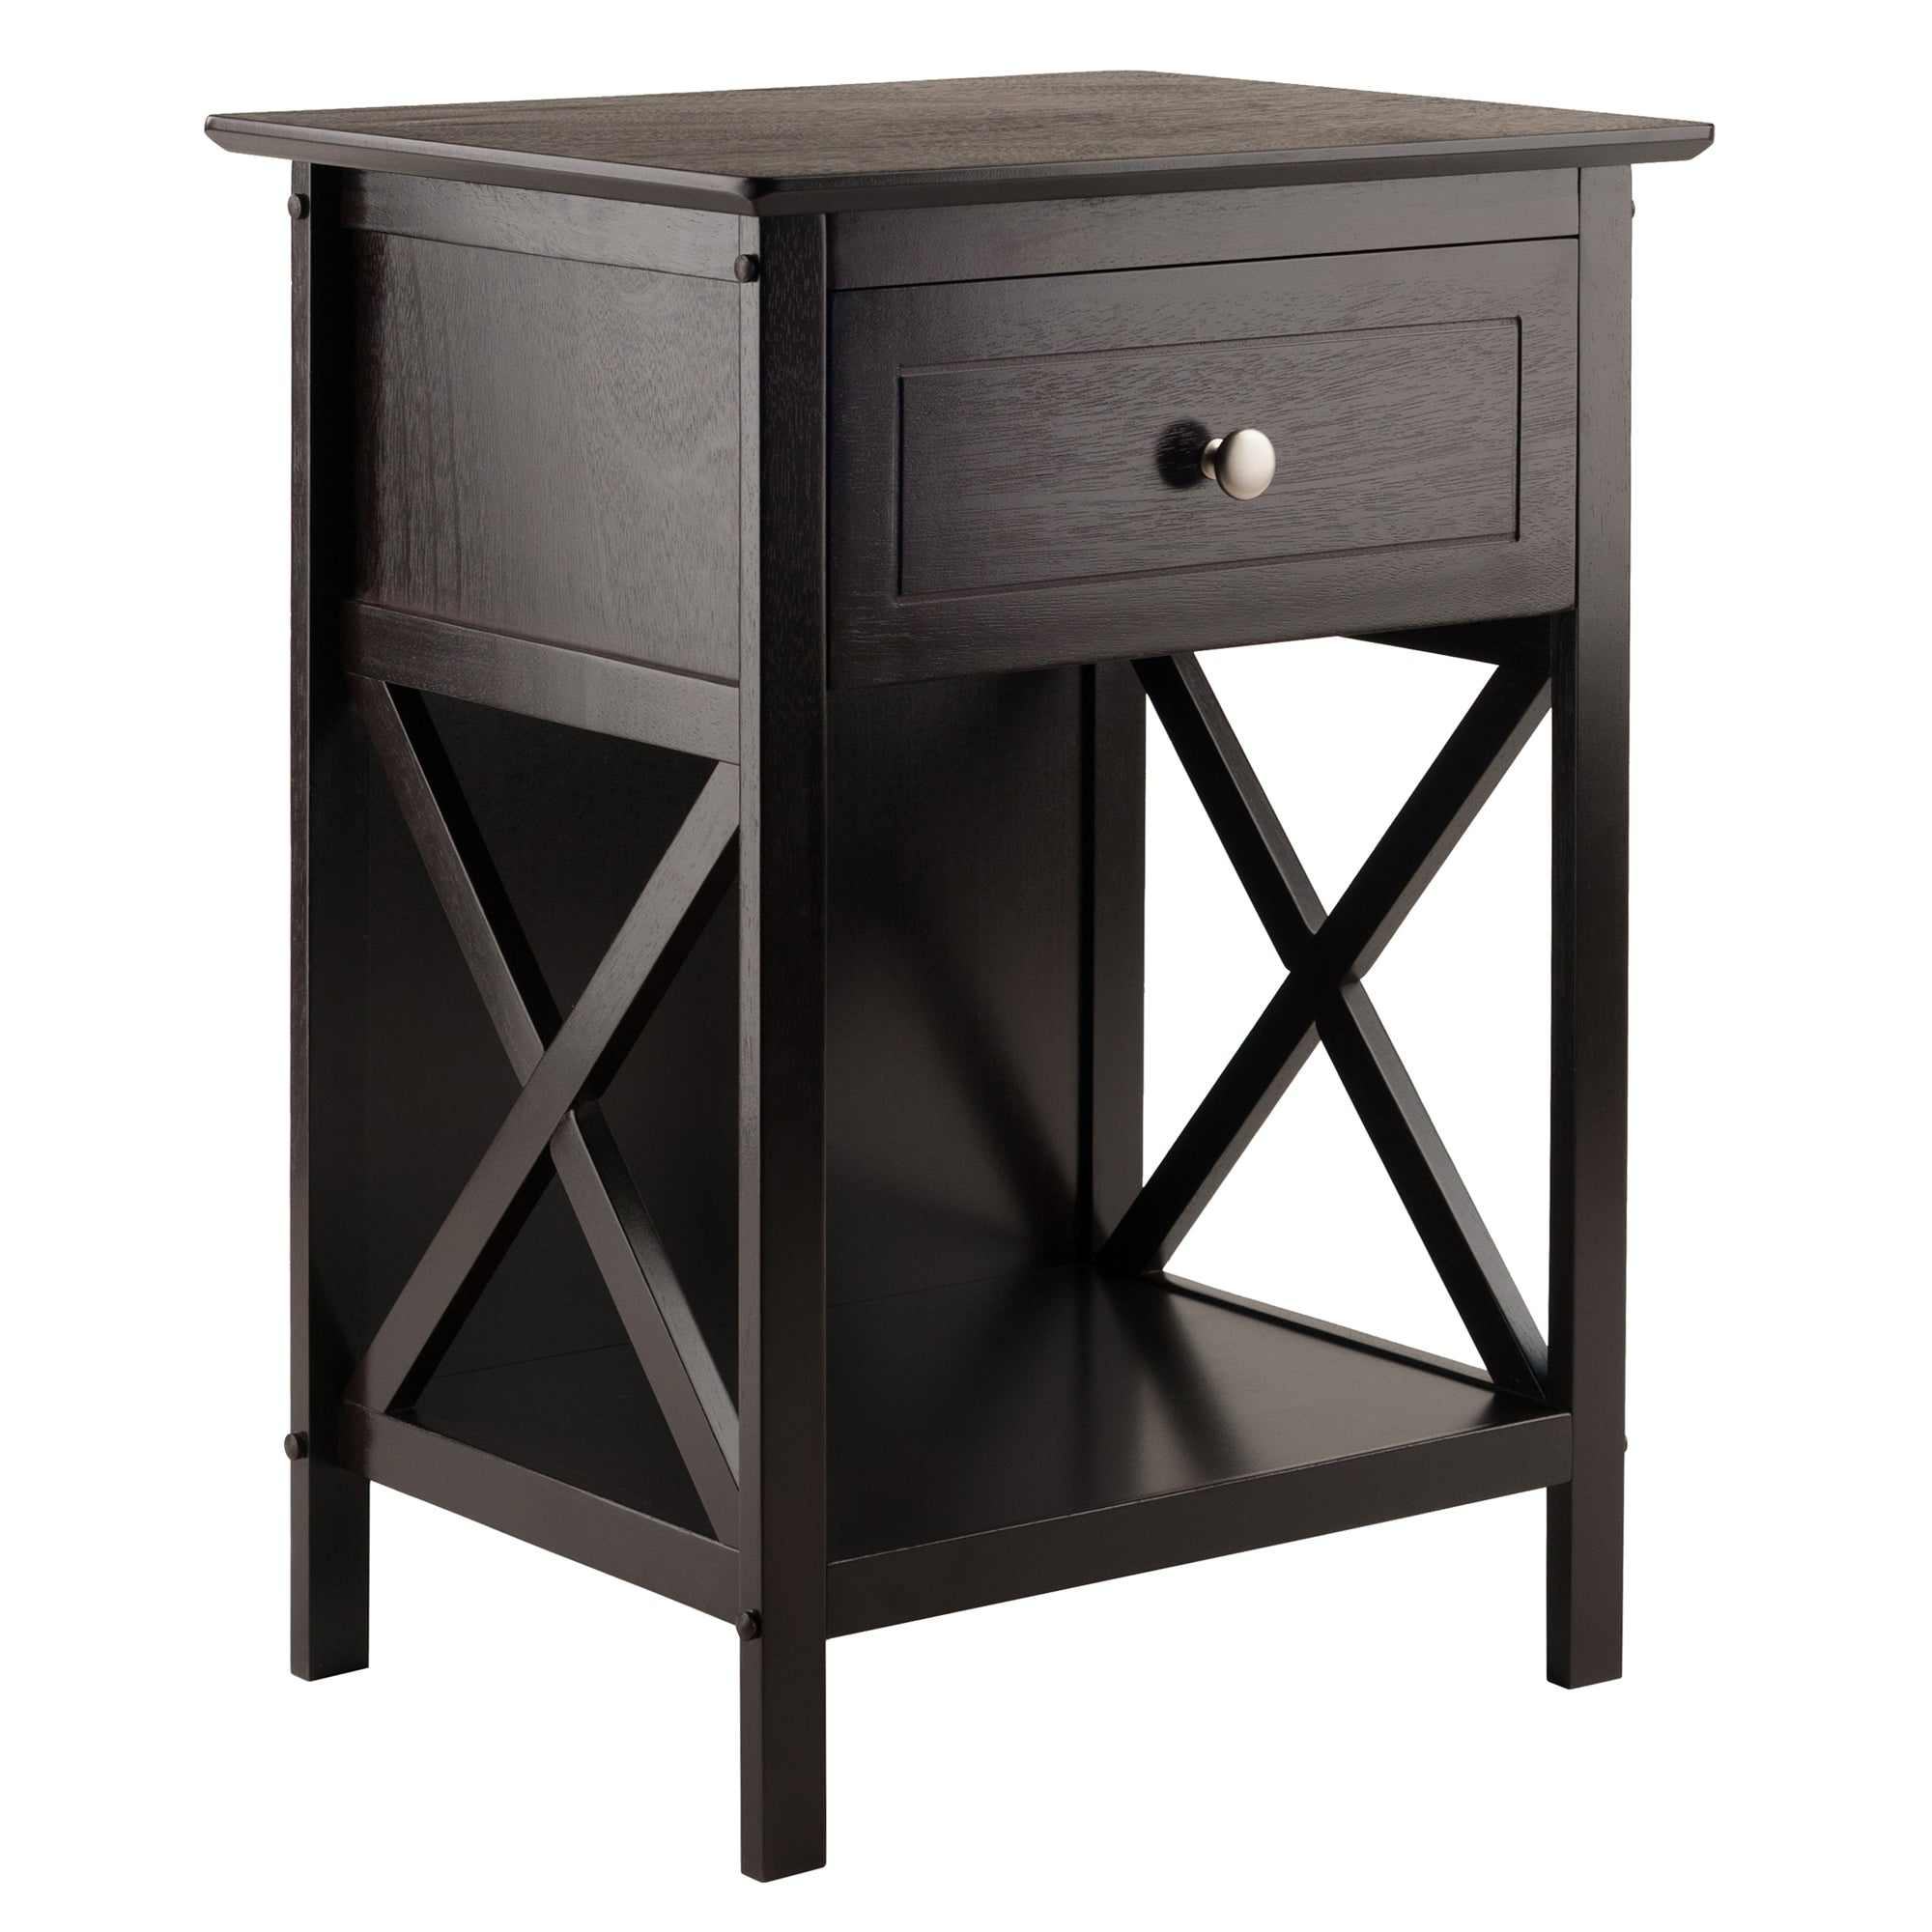 Xylia Accent Table in Coffee Finish - Pot Racks Plus